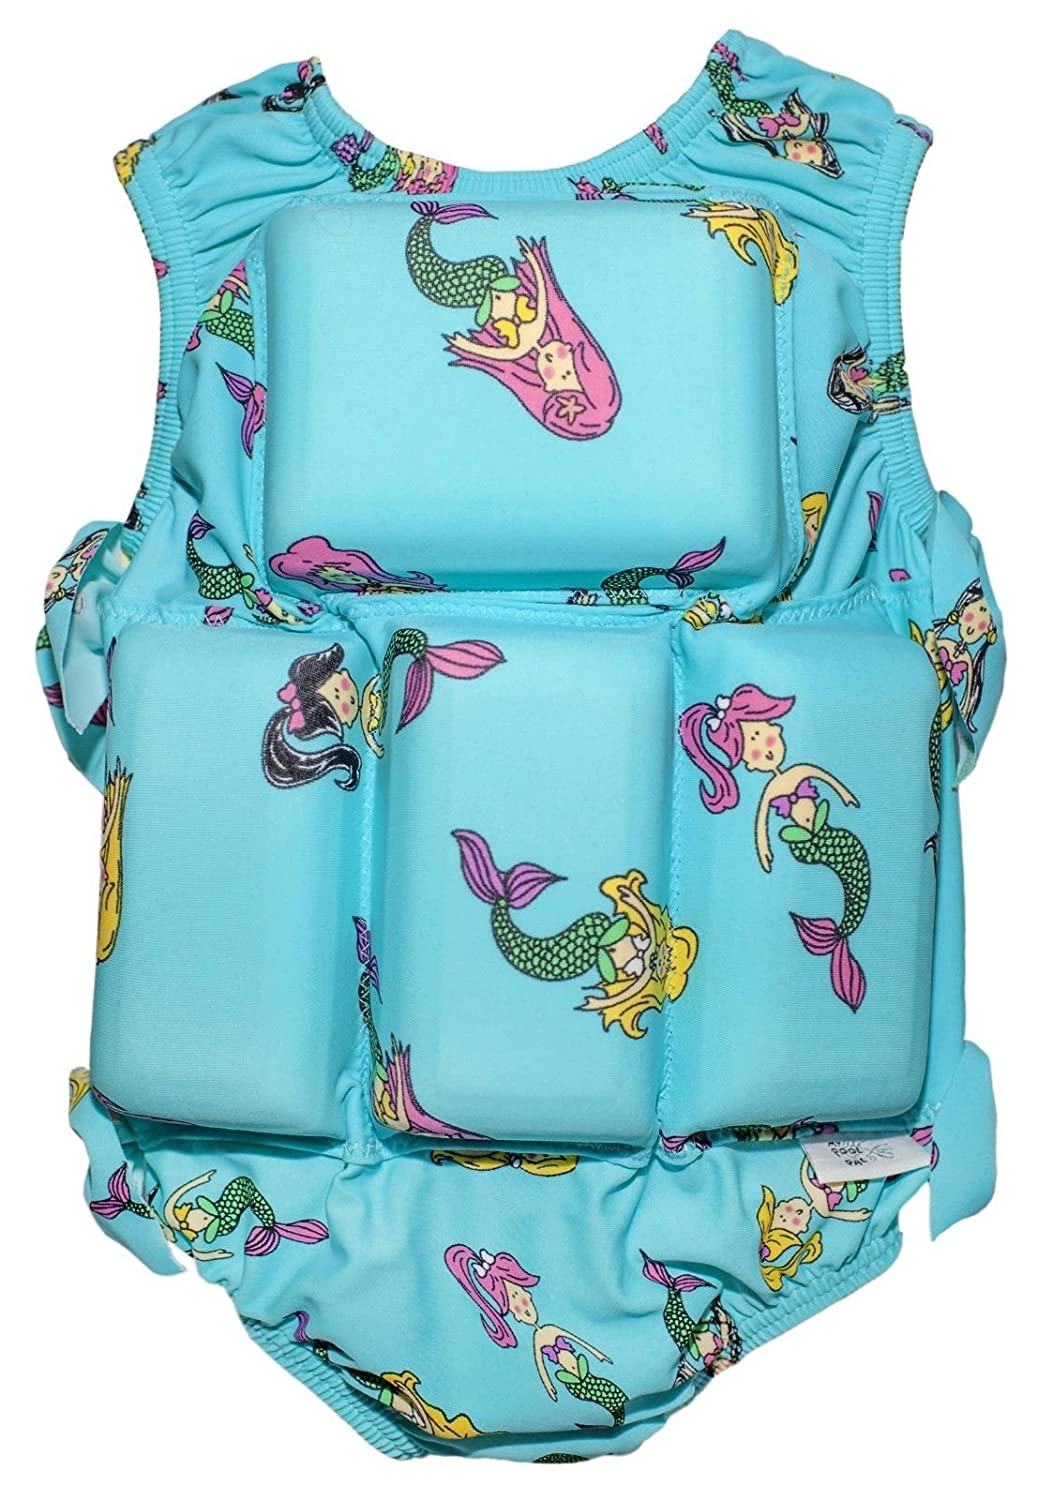 Girls Floating Bathing Suit Flotation Swimsuit X-Small, Small, Medium, Large Avaliable in Palm Tree,Sunglasses & Tie Dye Patterns (Small, Mermaid)